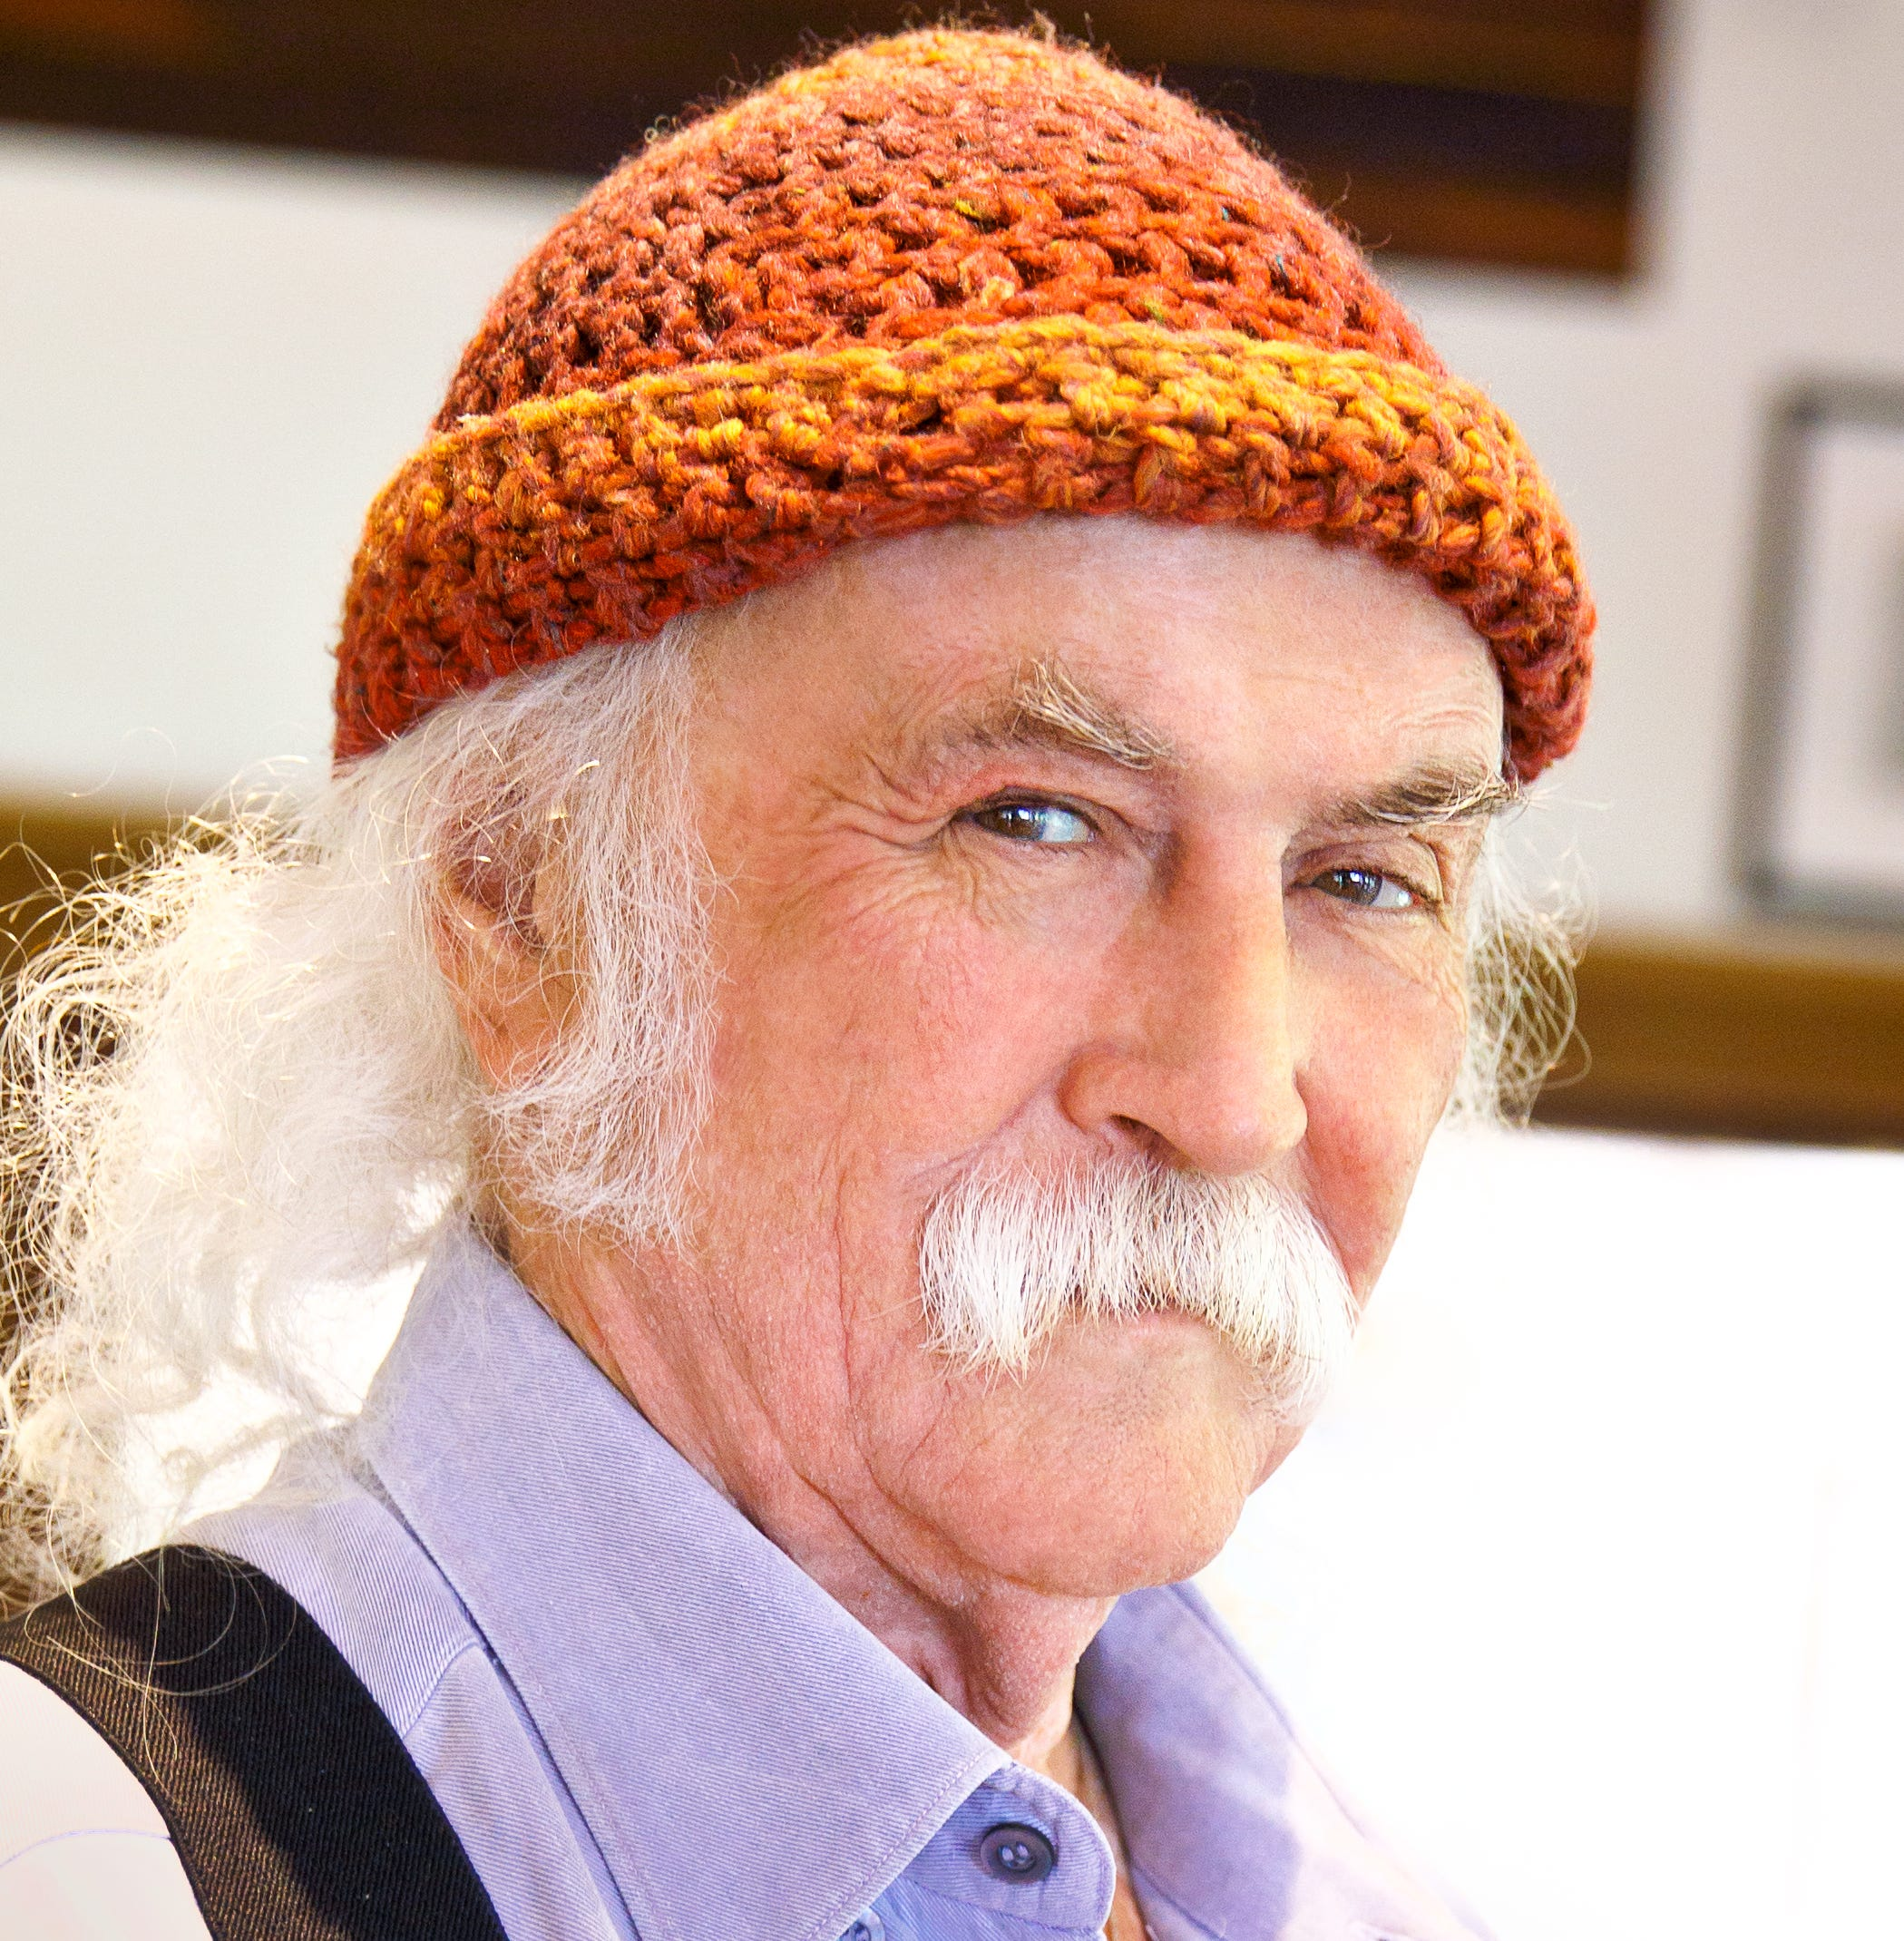 Singer-songwriter David Crosby, of Crosby, Stills & Nash, to perform in Vero Beach